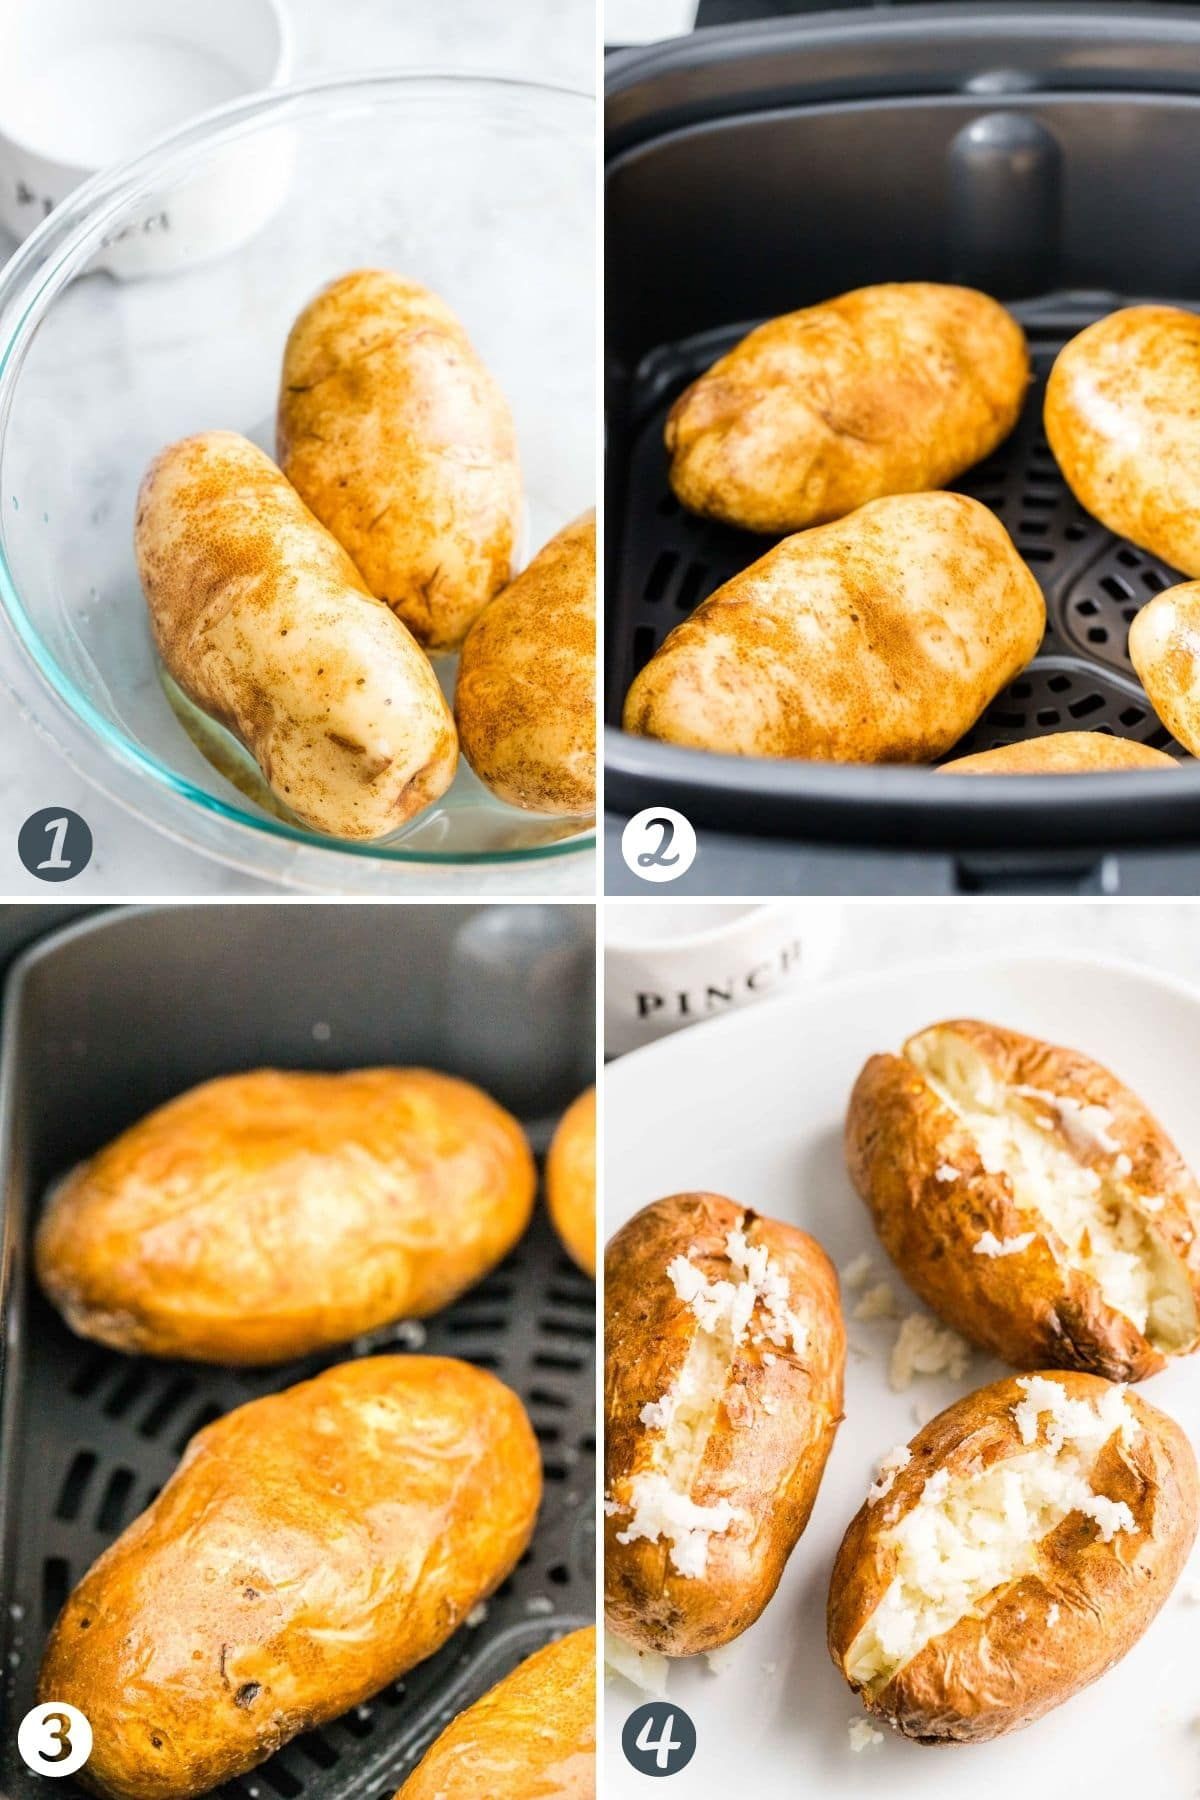 Steps for making baked potatoes in the Air Fryer